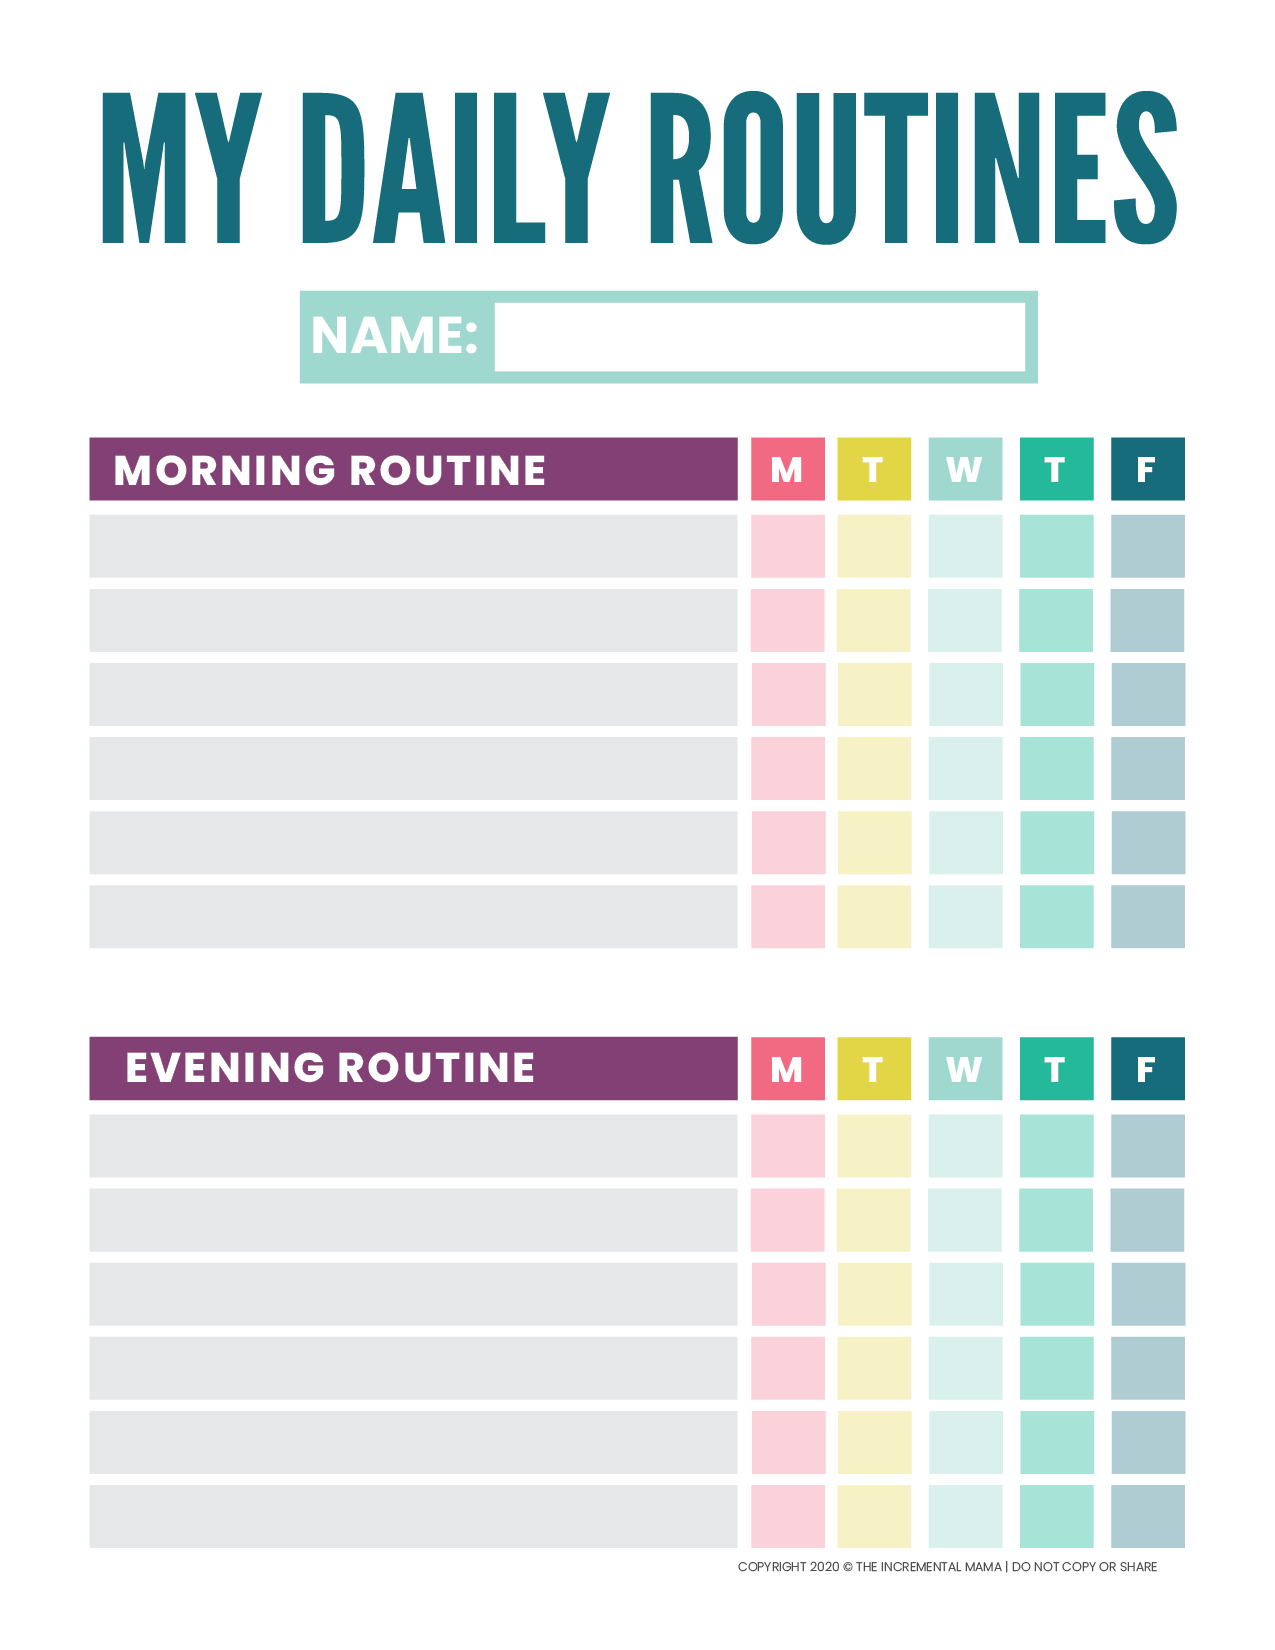 Free Printable Routine Chart For Kids Daily Routine Chart For Kids Daily Routine Chart Daily Schedule Kids